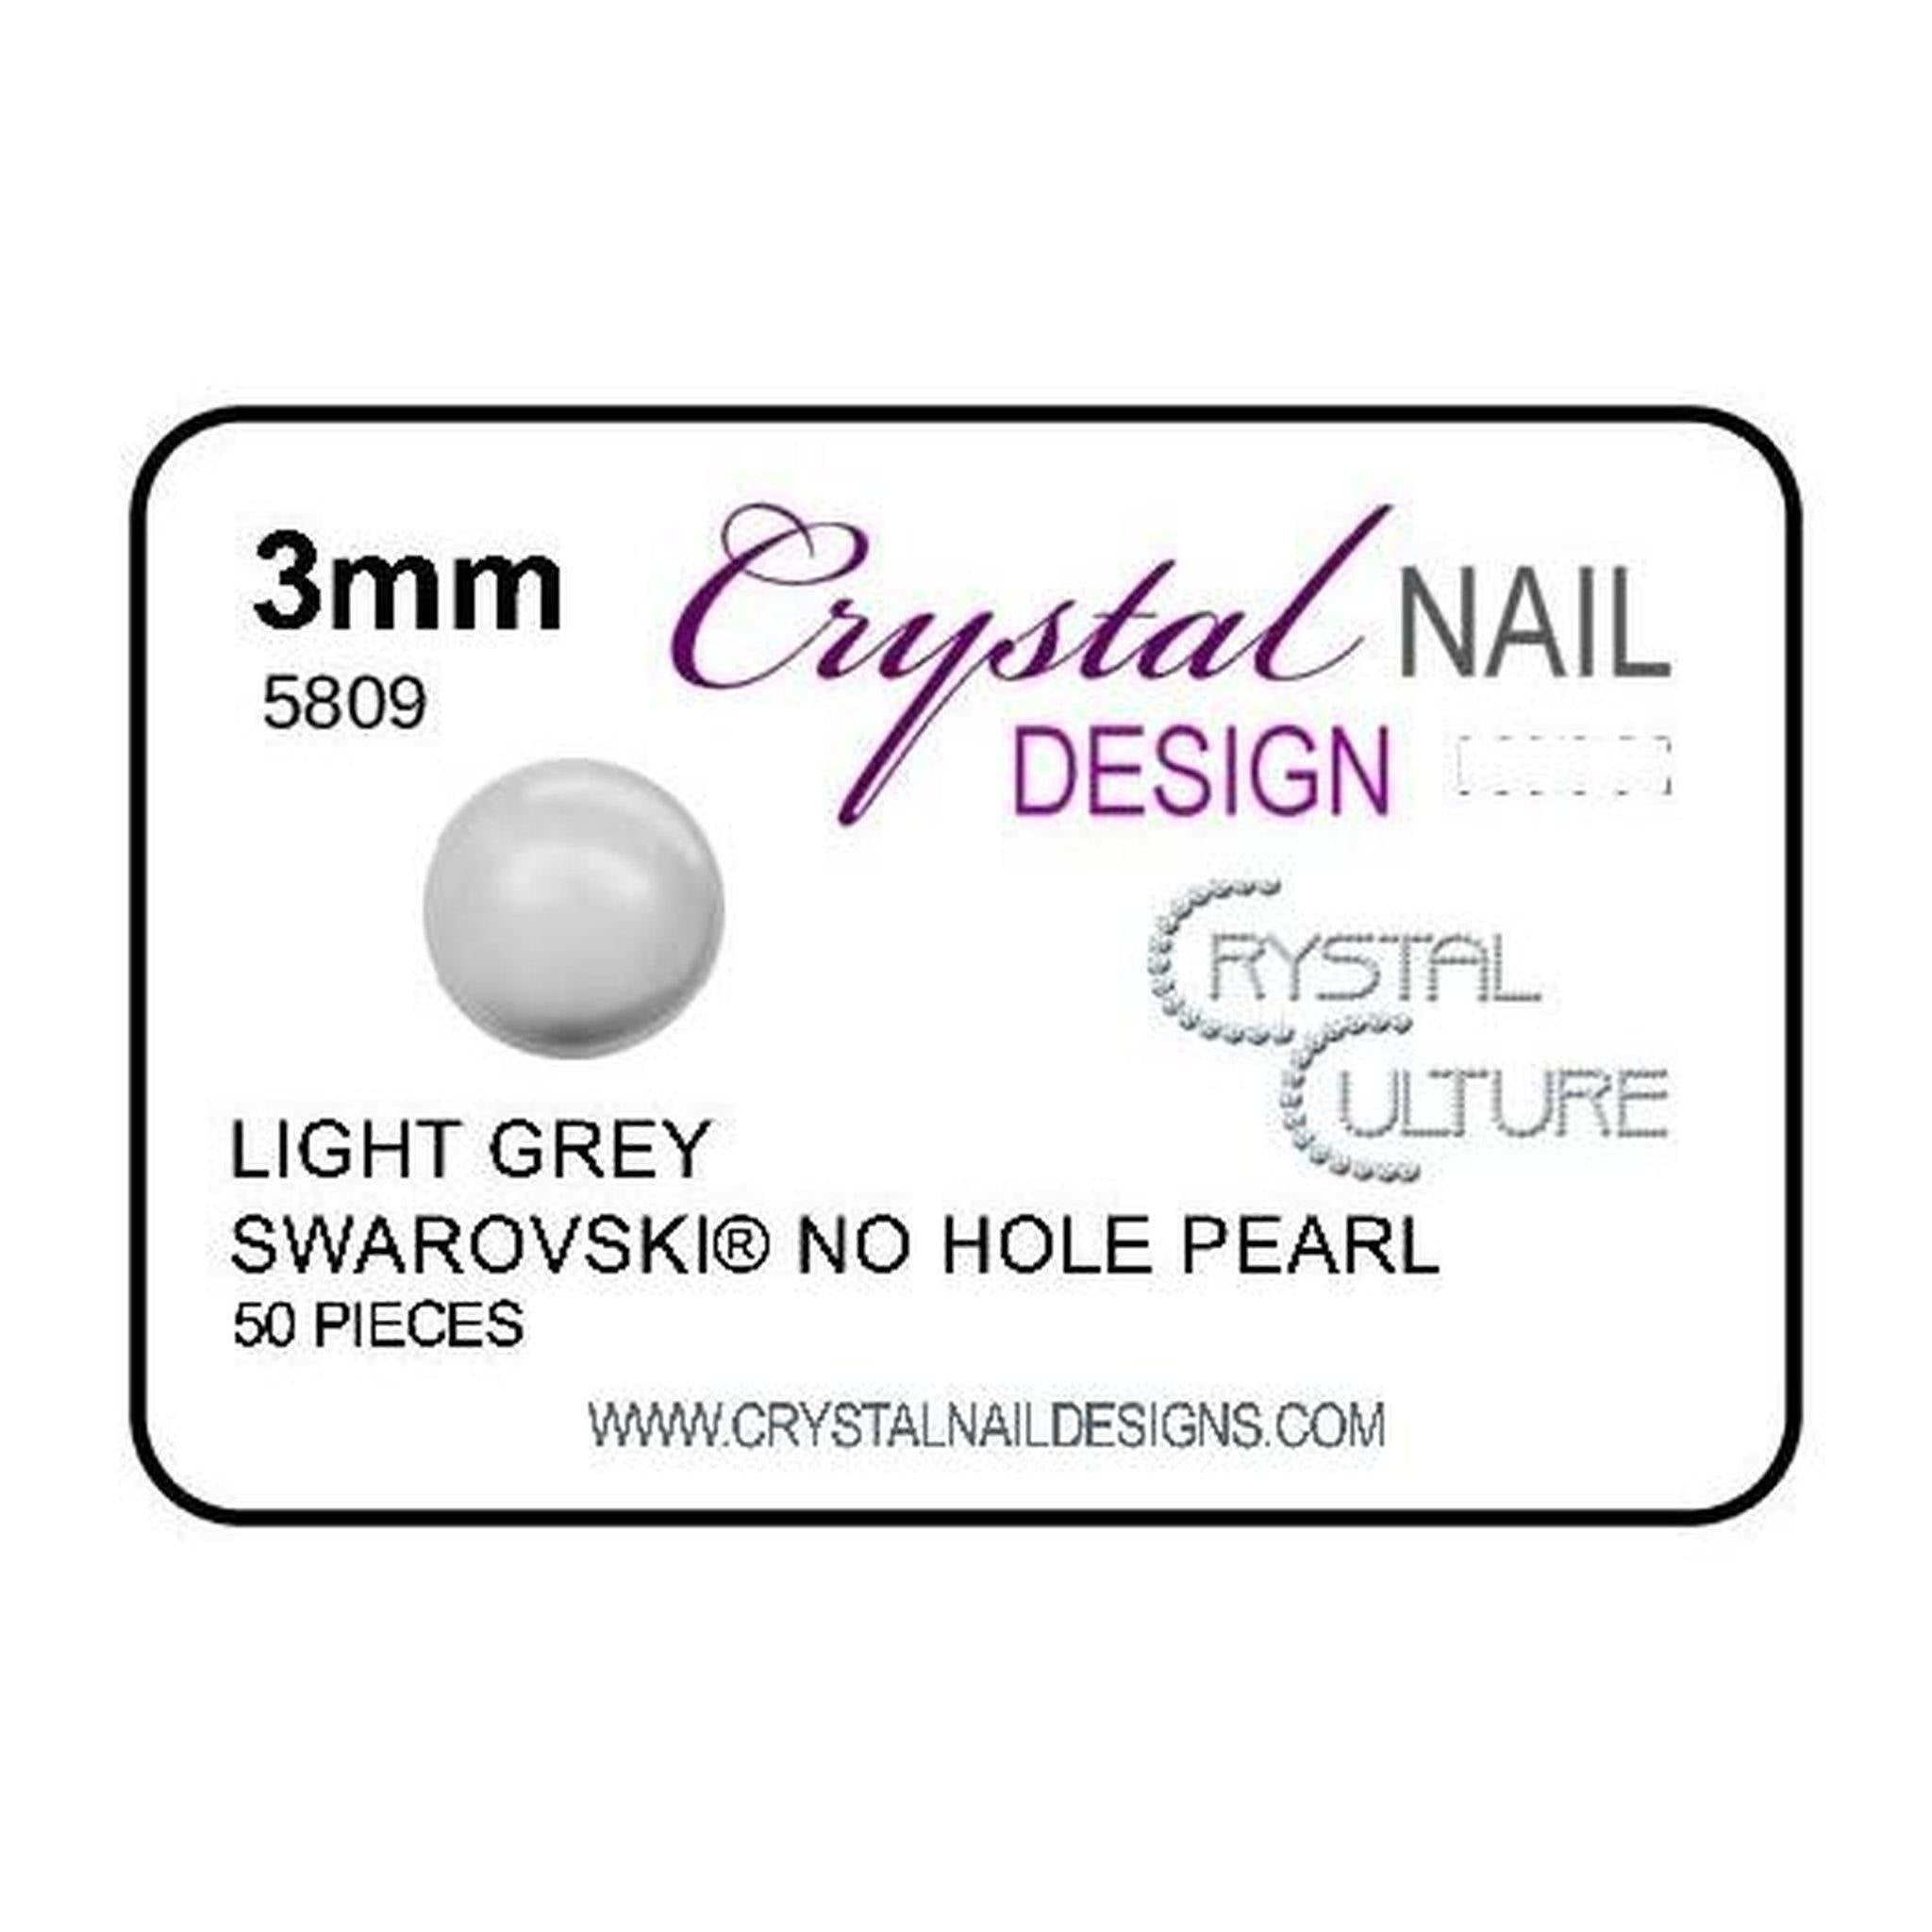 3mm Swarovski No Hole Pearl - Light Grey-Gel Essentialz